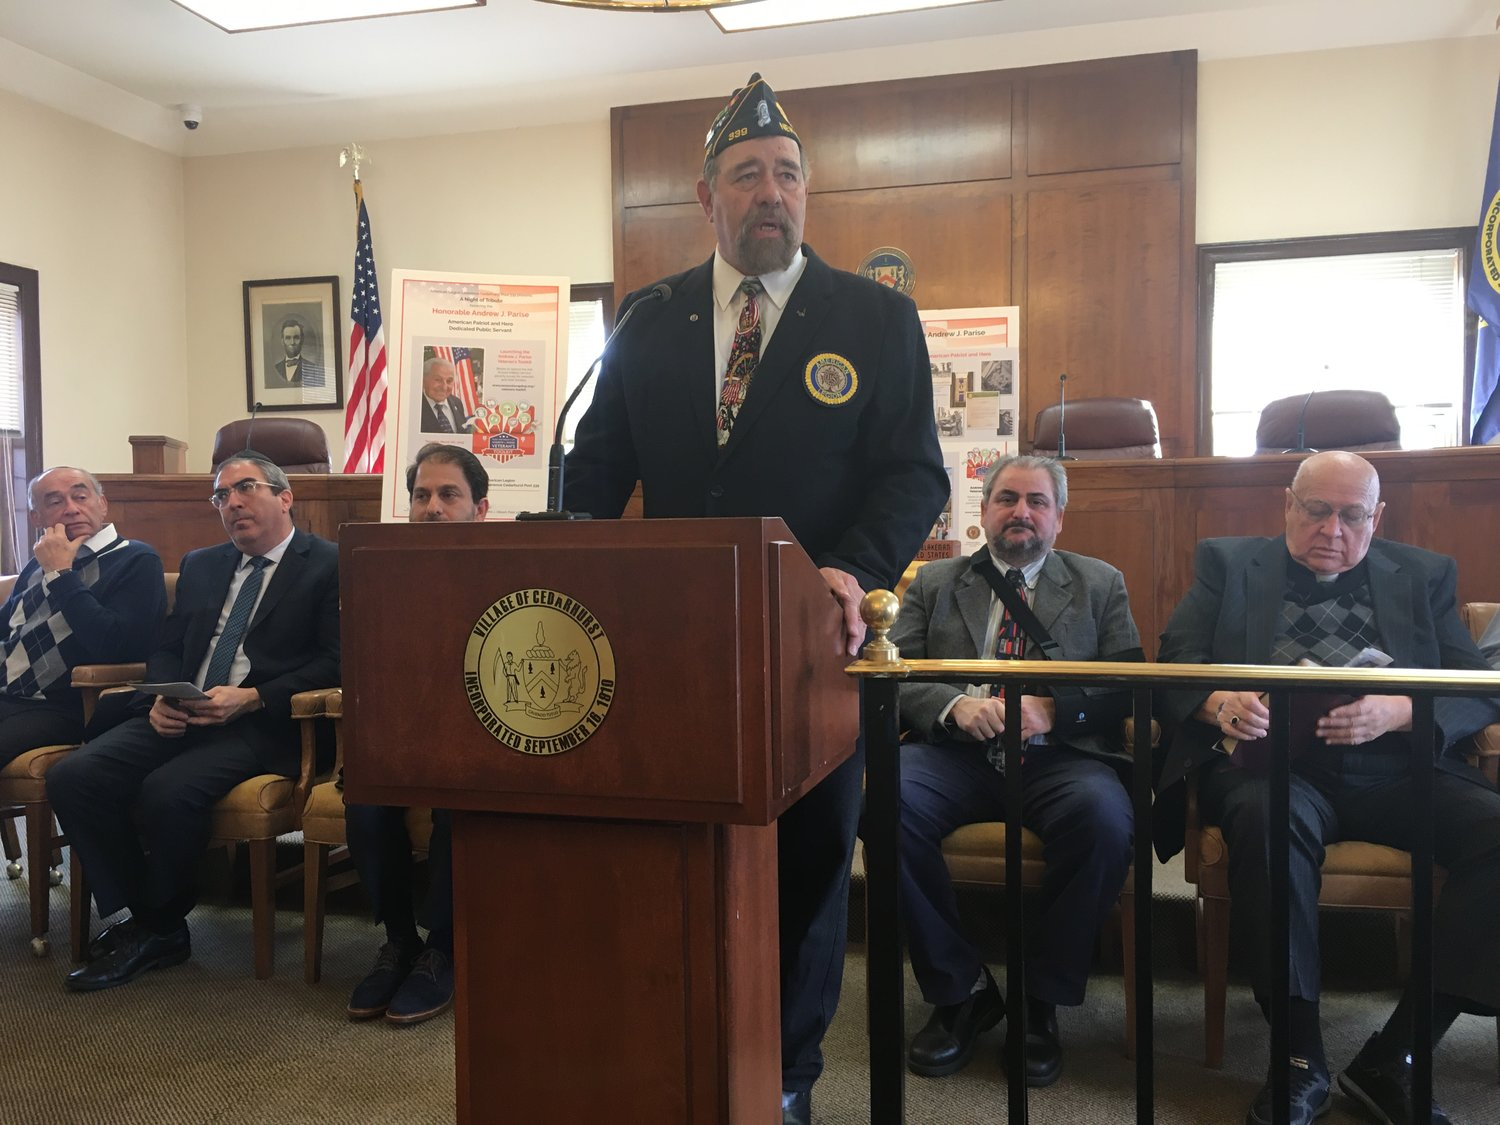 Post 339 commander and Vietnam War veteran Syd Mandelbaum said that it is important to never forget the sacrifices veterans have made.